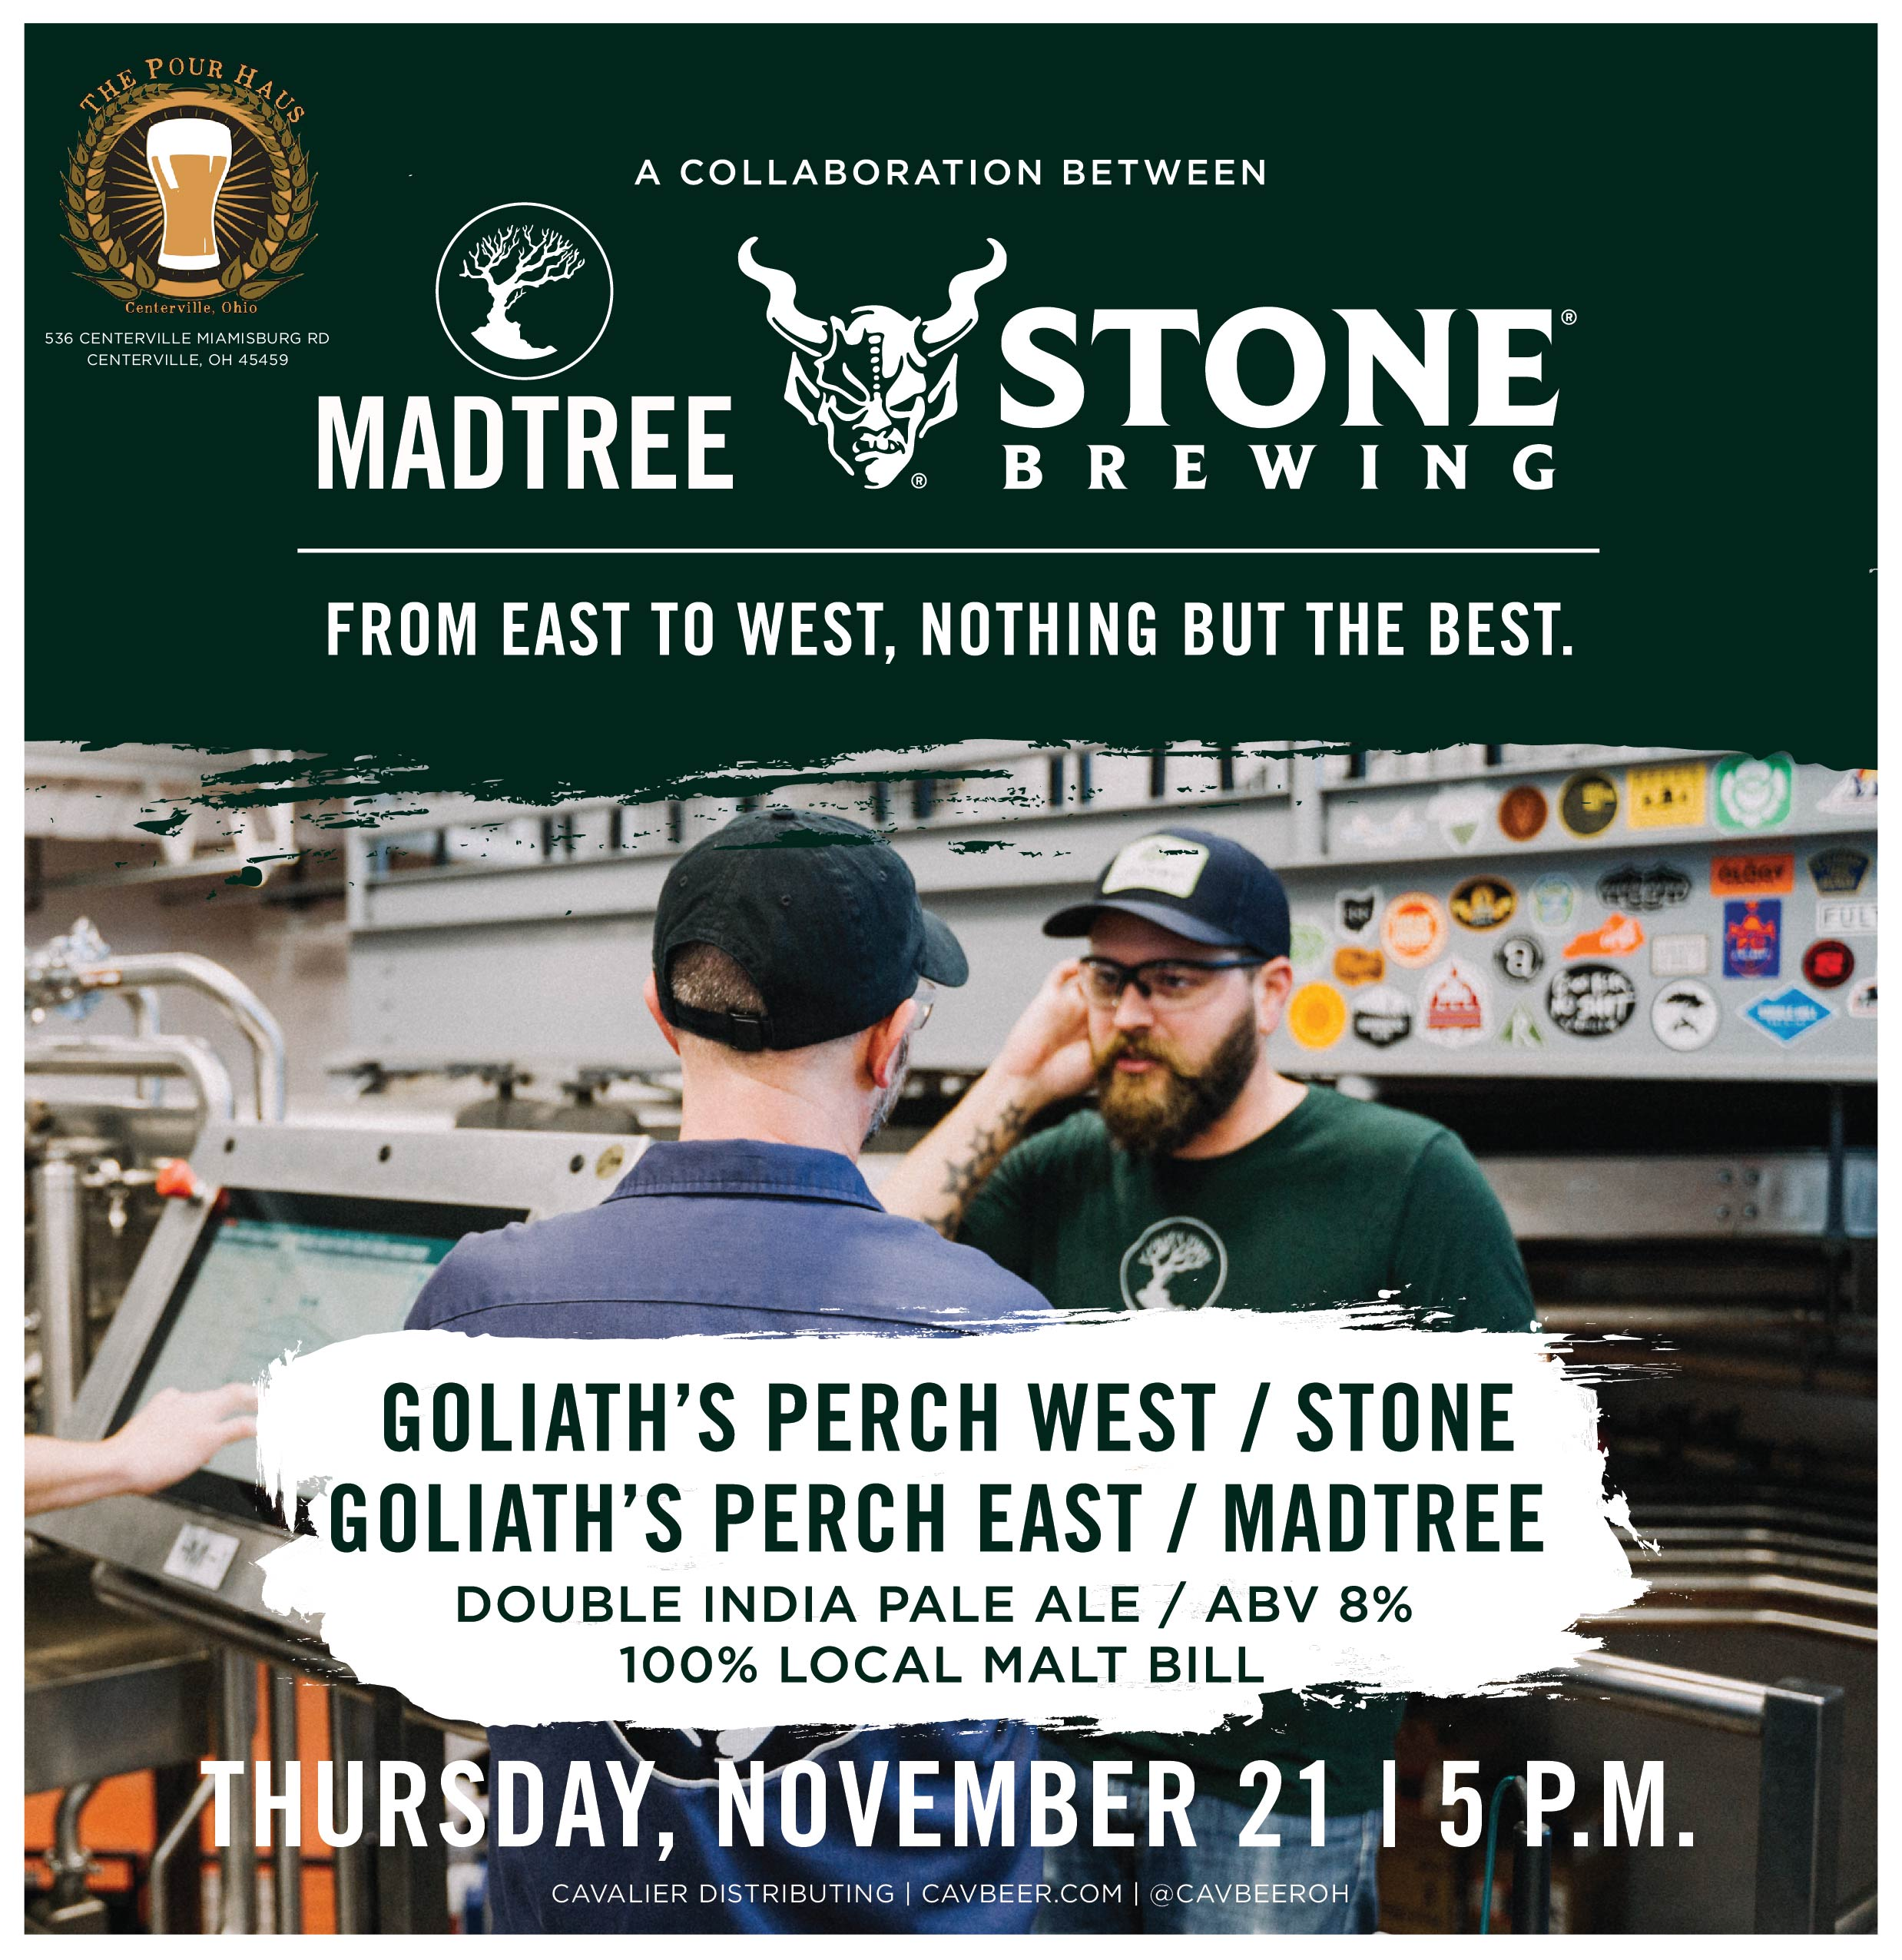 MadTree & Stone Brewing @ The Pour Haus